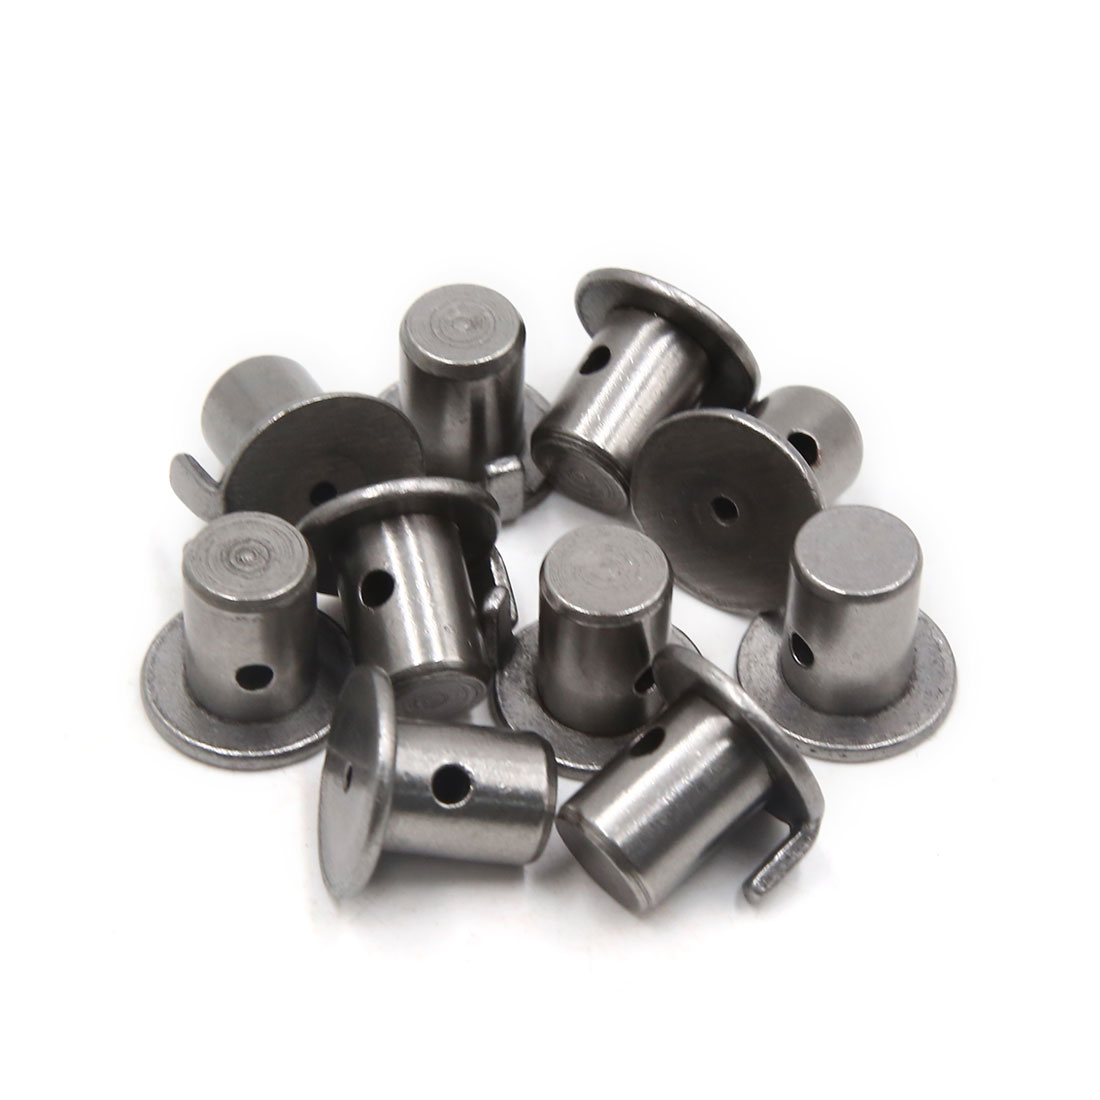 10pcs Motorcycle Clutch Actuator Shaft Arm Lifter Push Rod Pin Bolt for CD 110